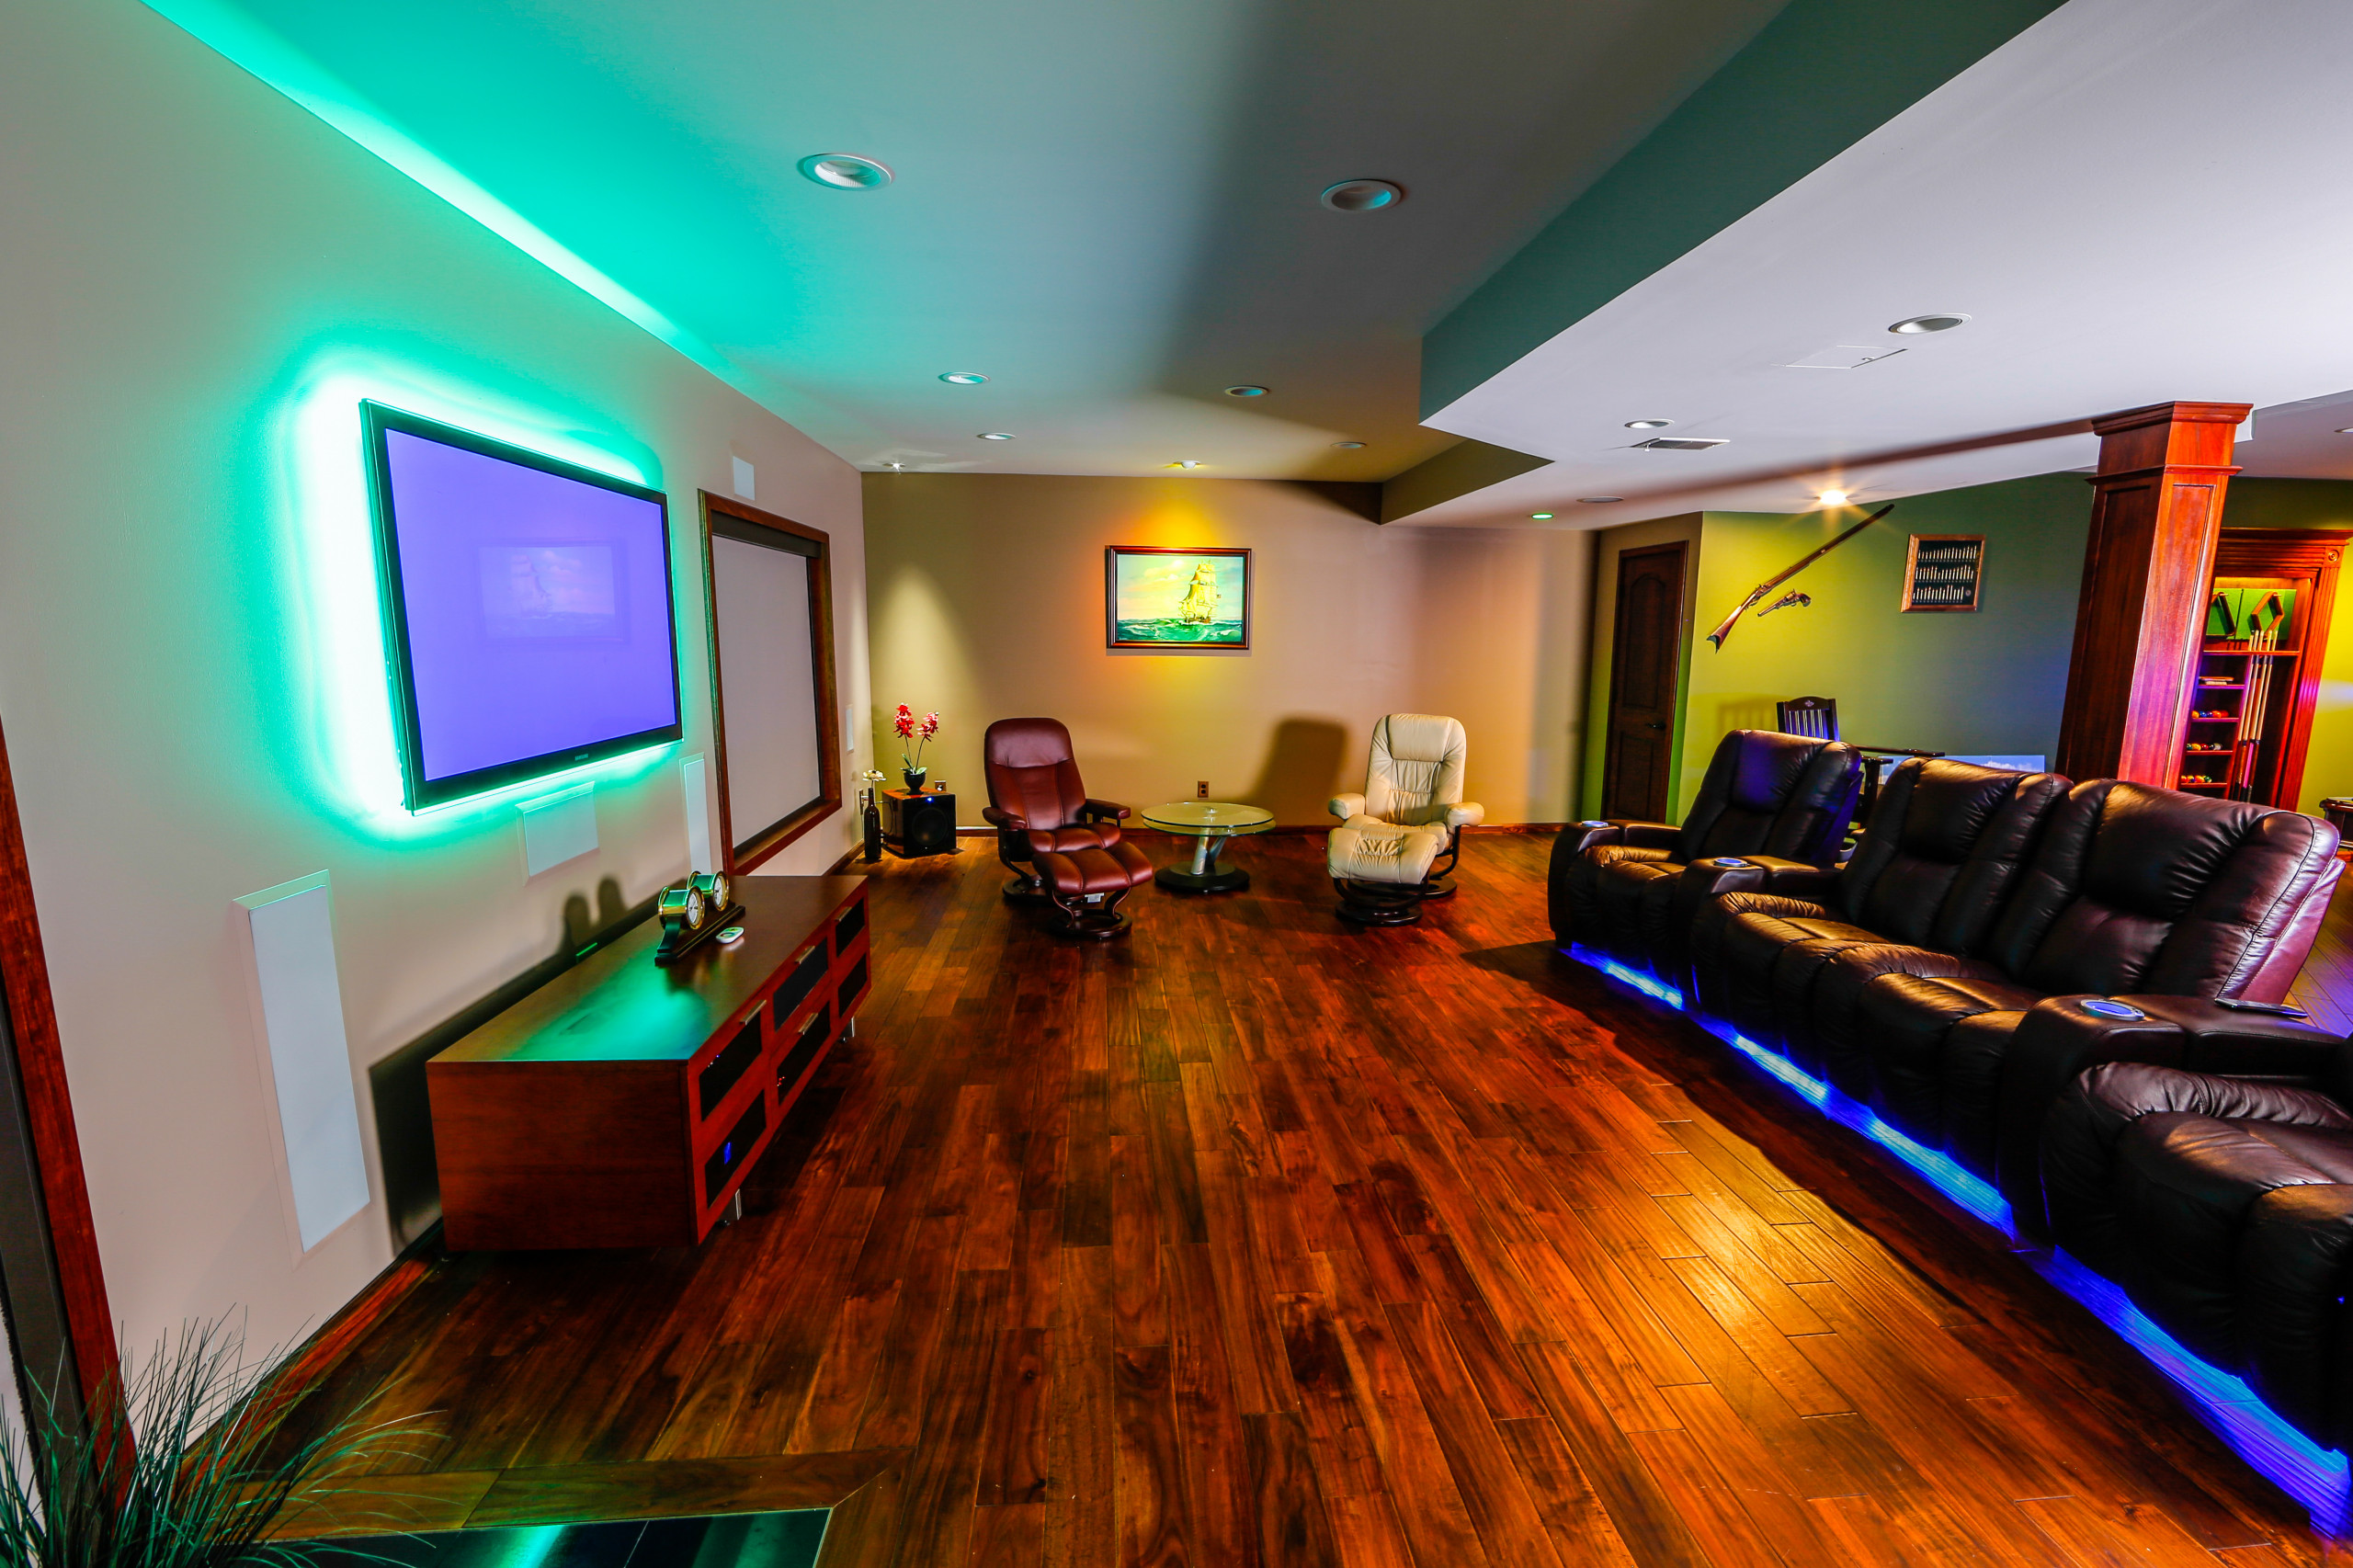 led accent lighting and recessed